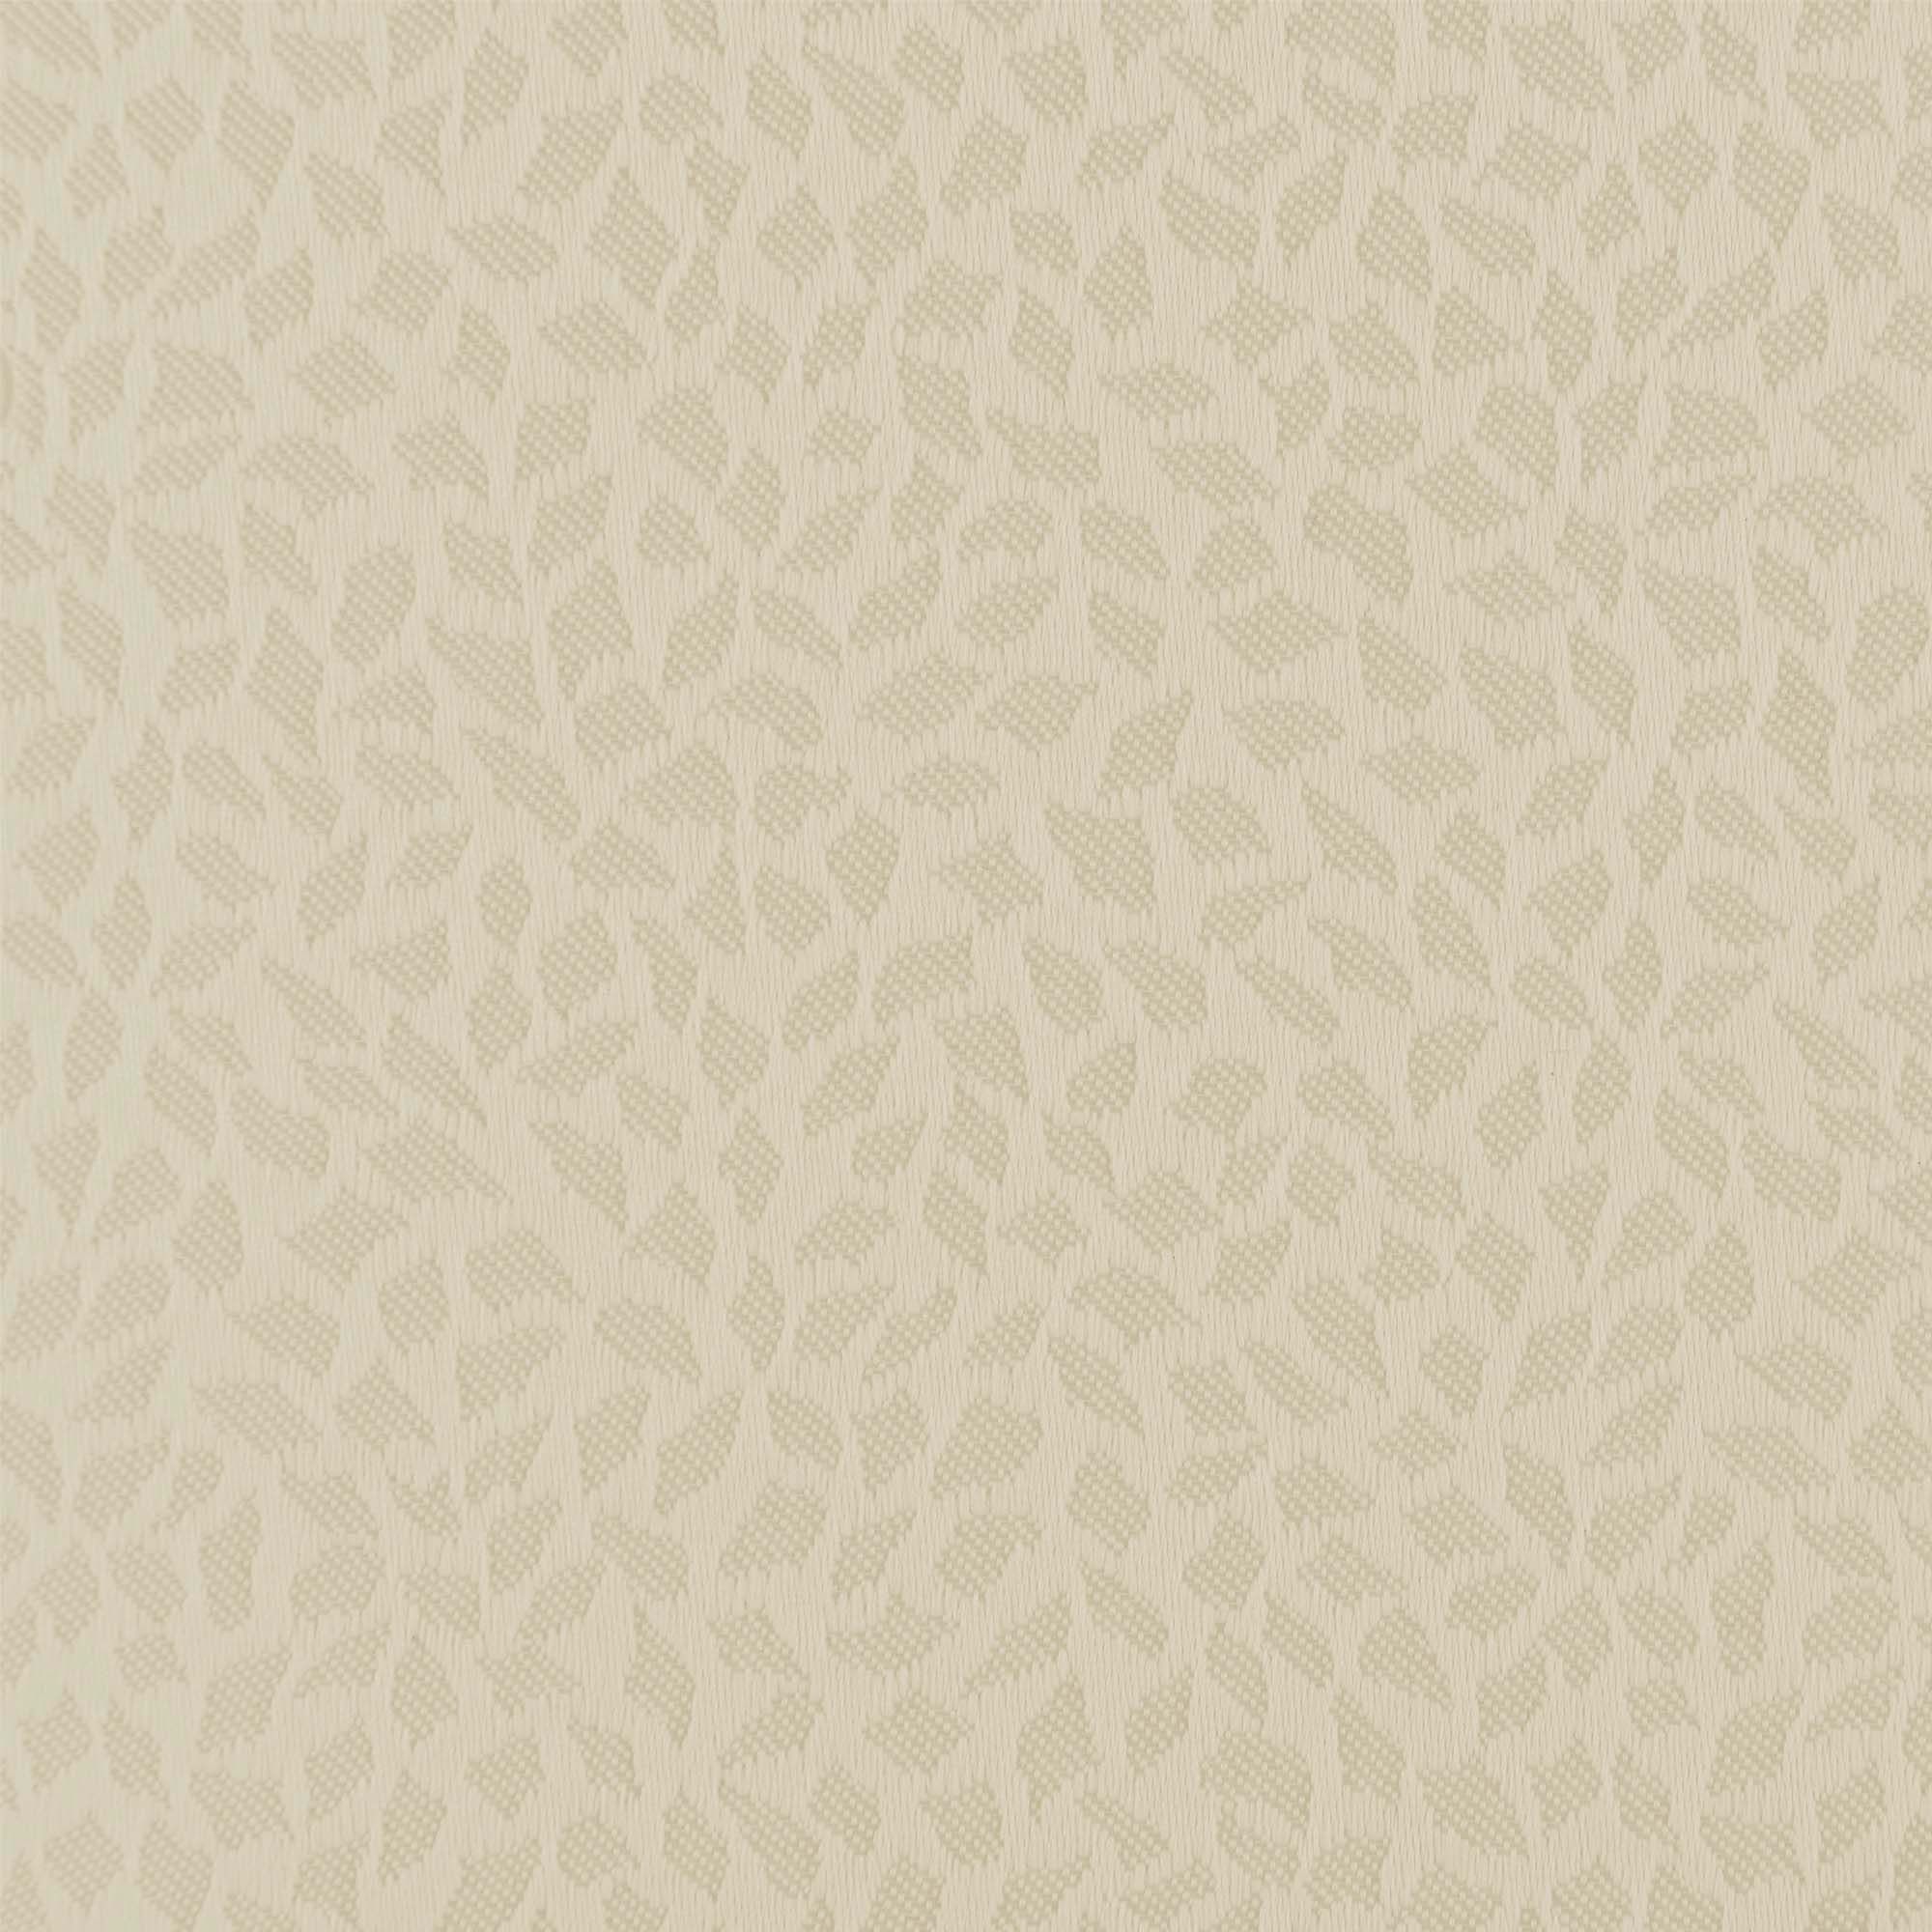 Alessi Ivory Blind Fabric